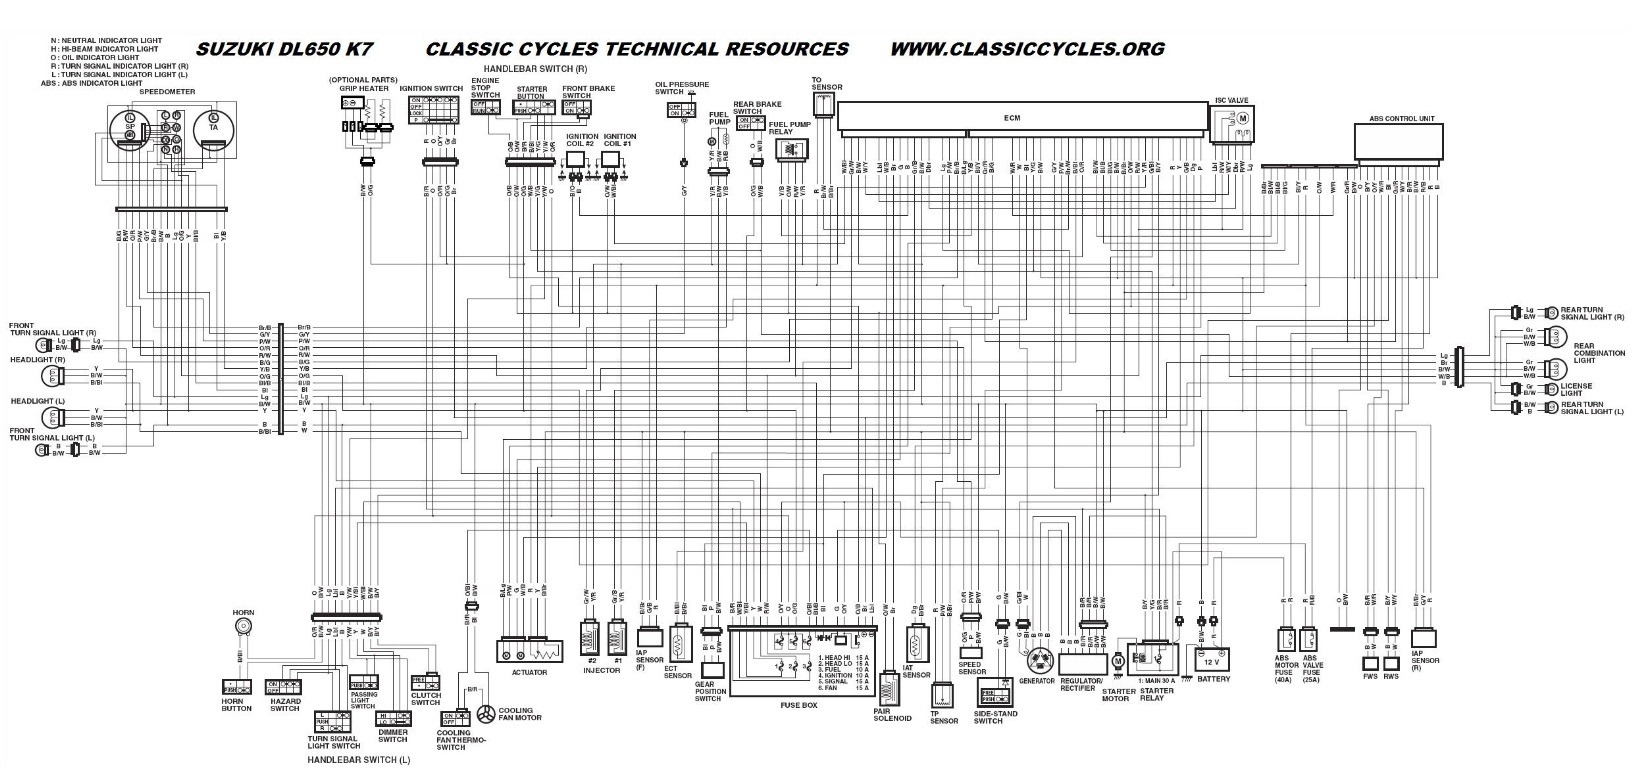 92 Suzuki Bandit Gsf 400 Wiring Diagram from www.classiccycles.org